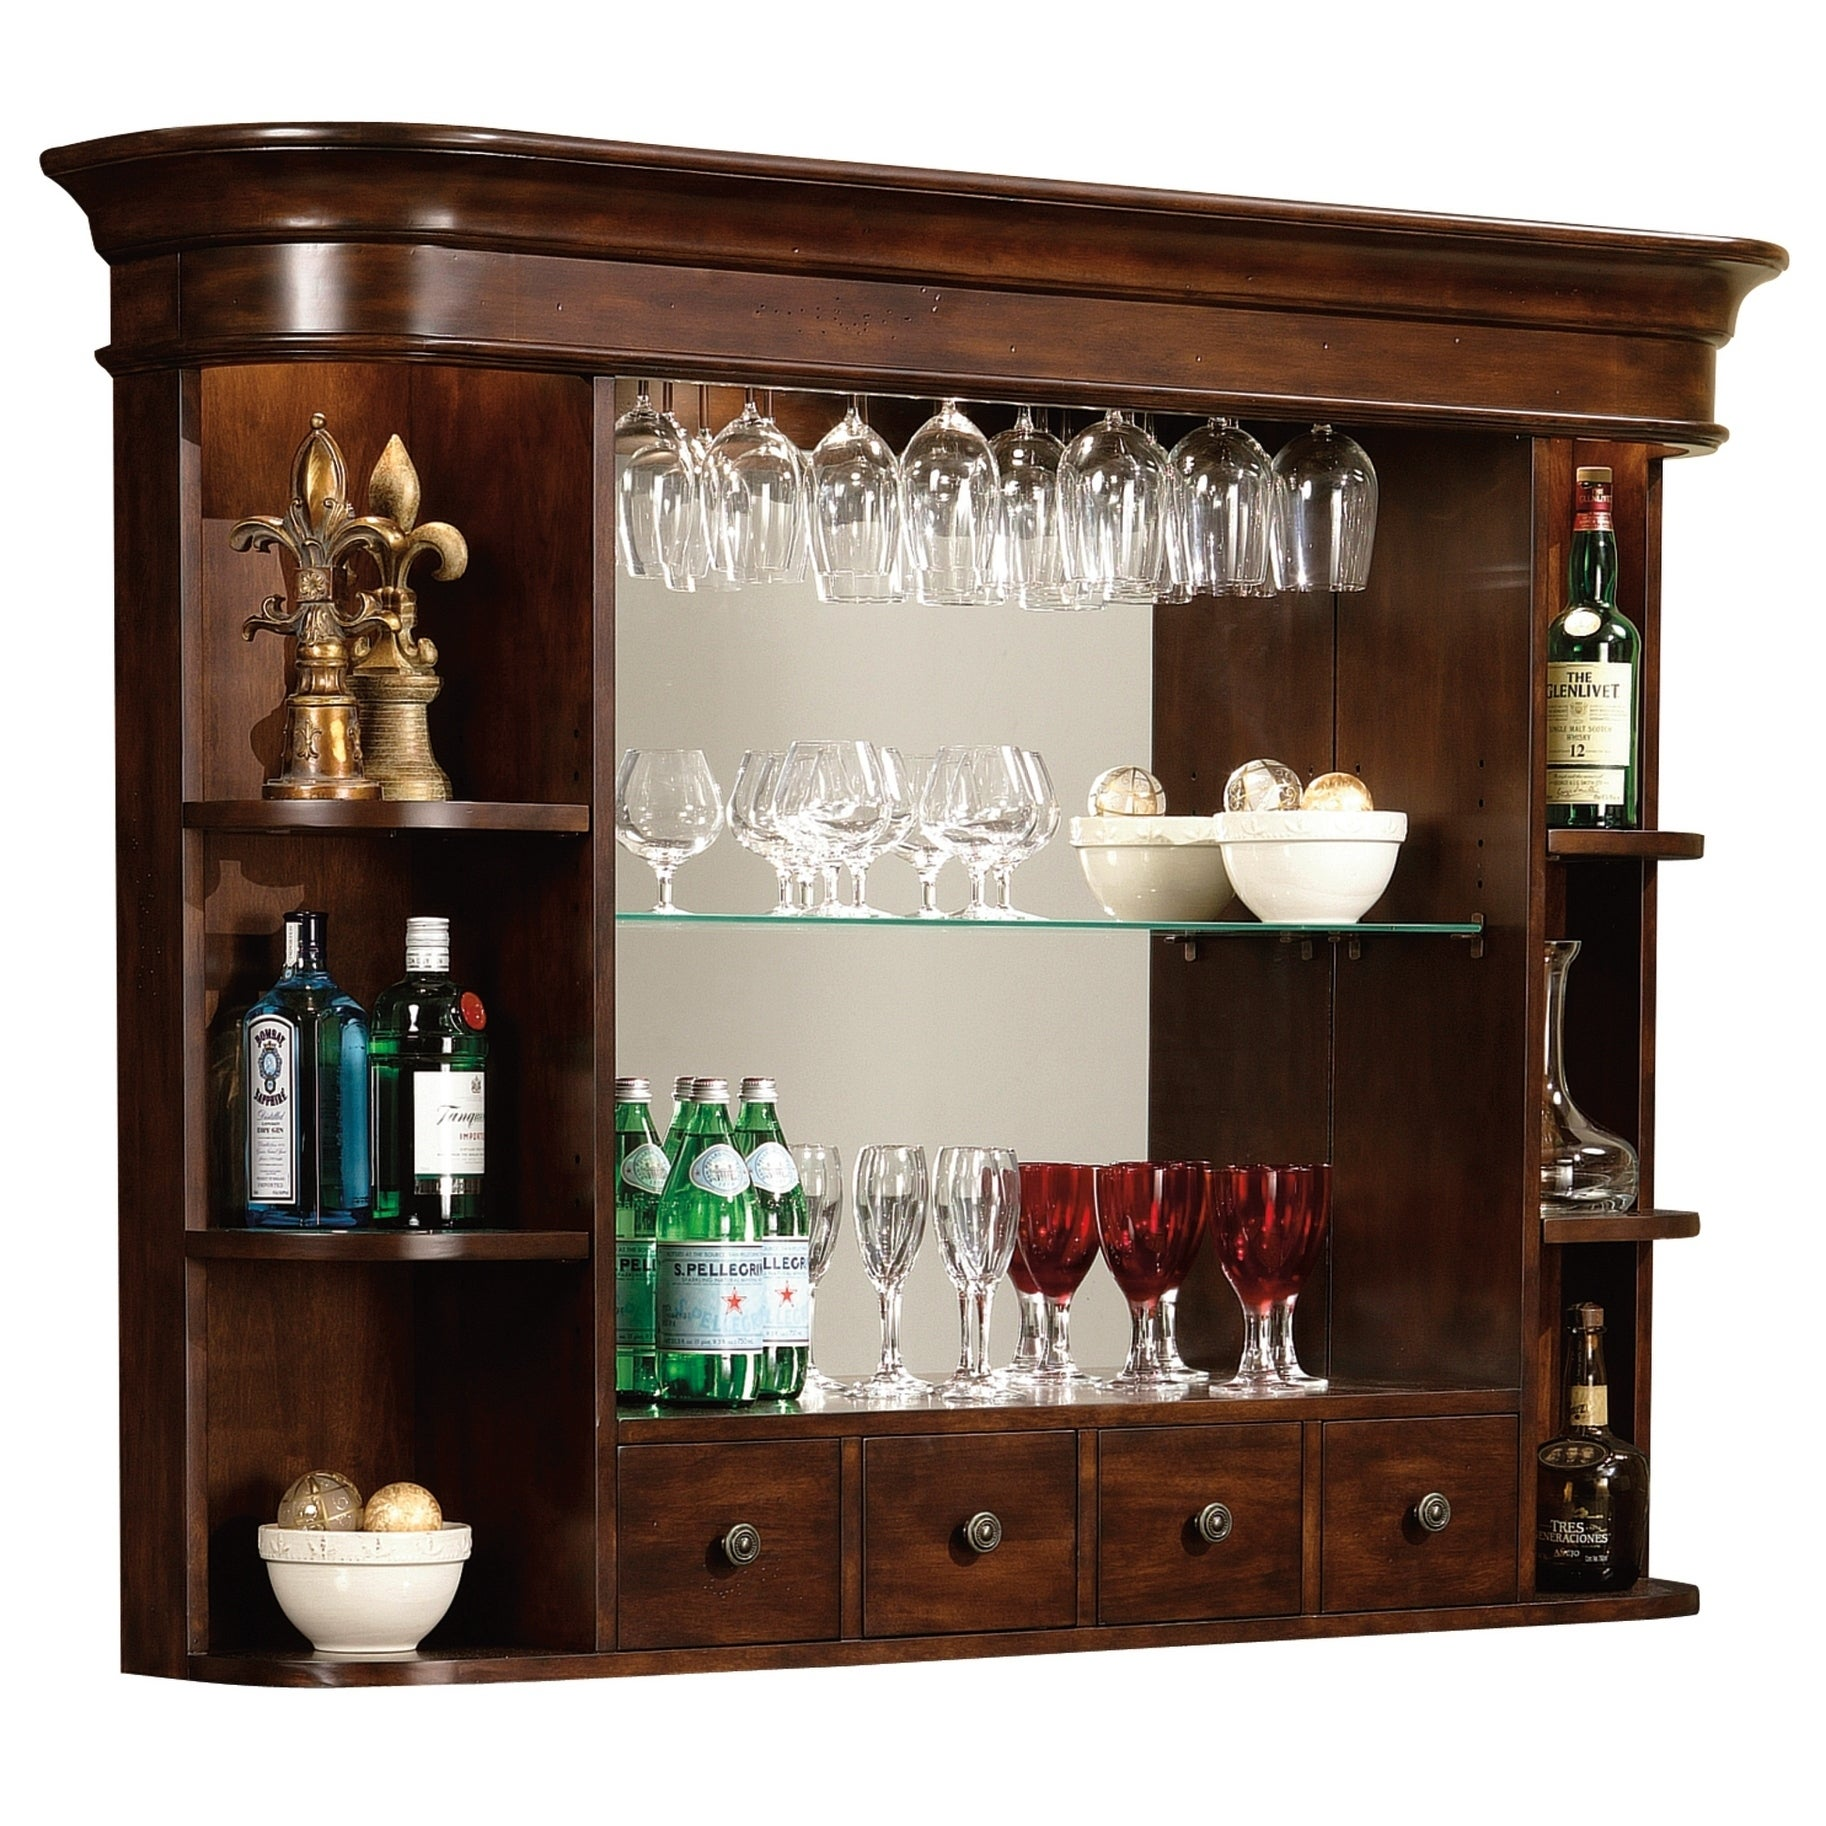 Howard Miller Niagara Hutch Rustic Vintage Style, Four Drawer Liquor Or  Wine Display Shelves With Mirrored Back - N/a